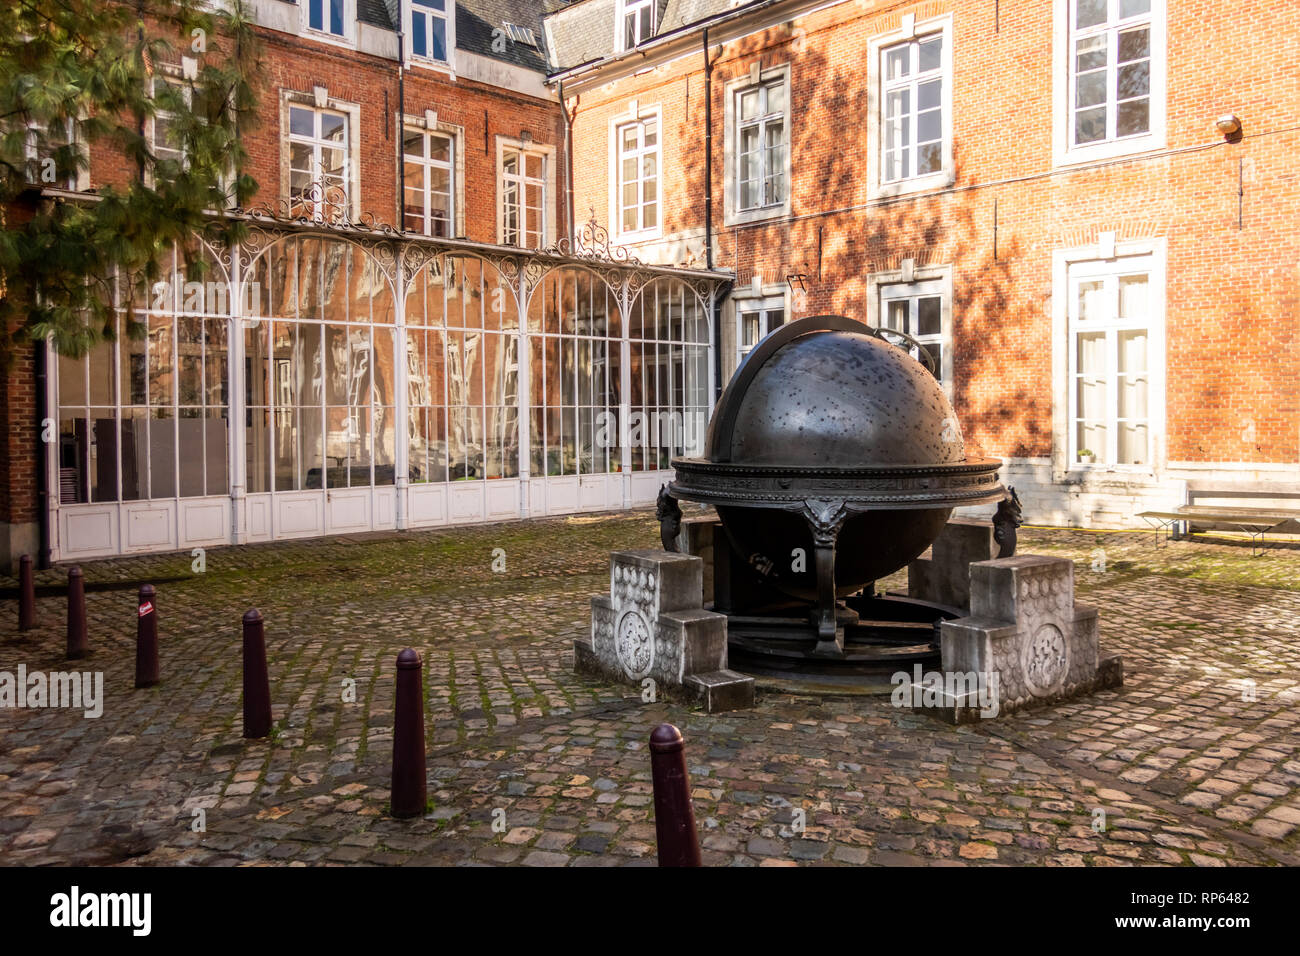 The Xangxi Globe, in the courtyard of Atrechtcollege, Leuven, Belgium. Bronze with the 1888 stellar constellations known end 17th century engraved - Stock Image